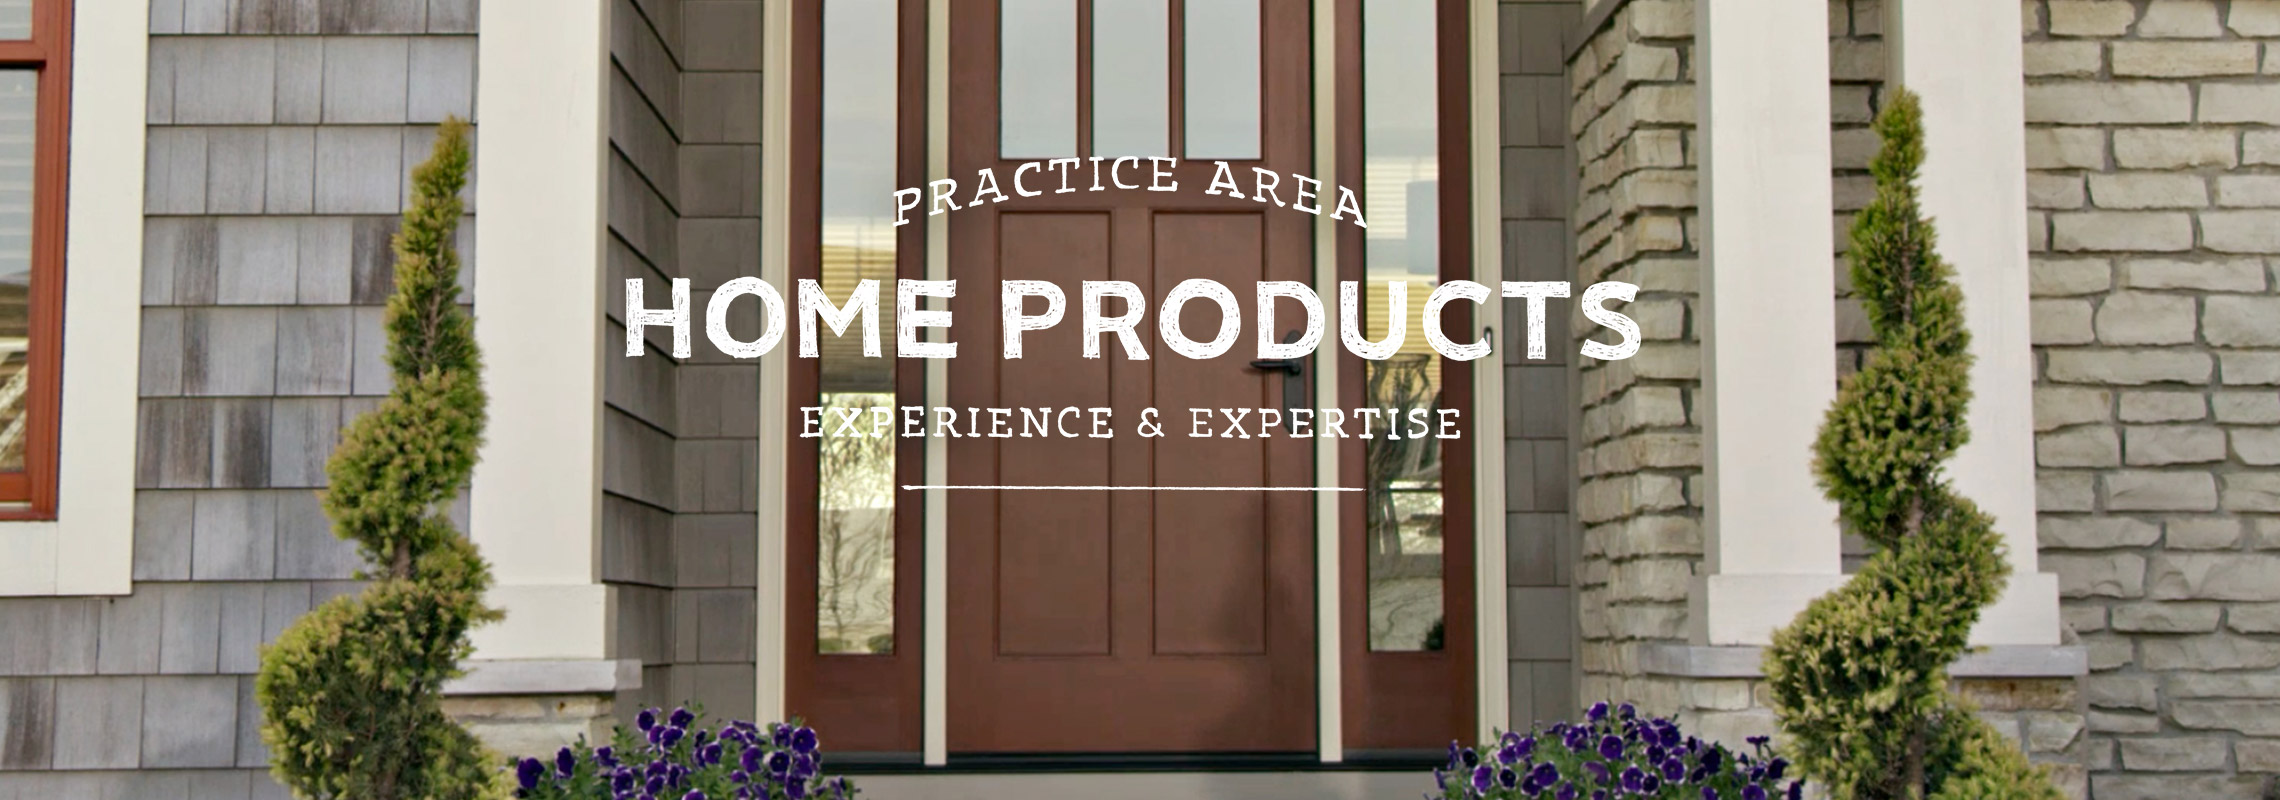 practice area home products experience and expertise